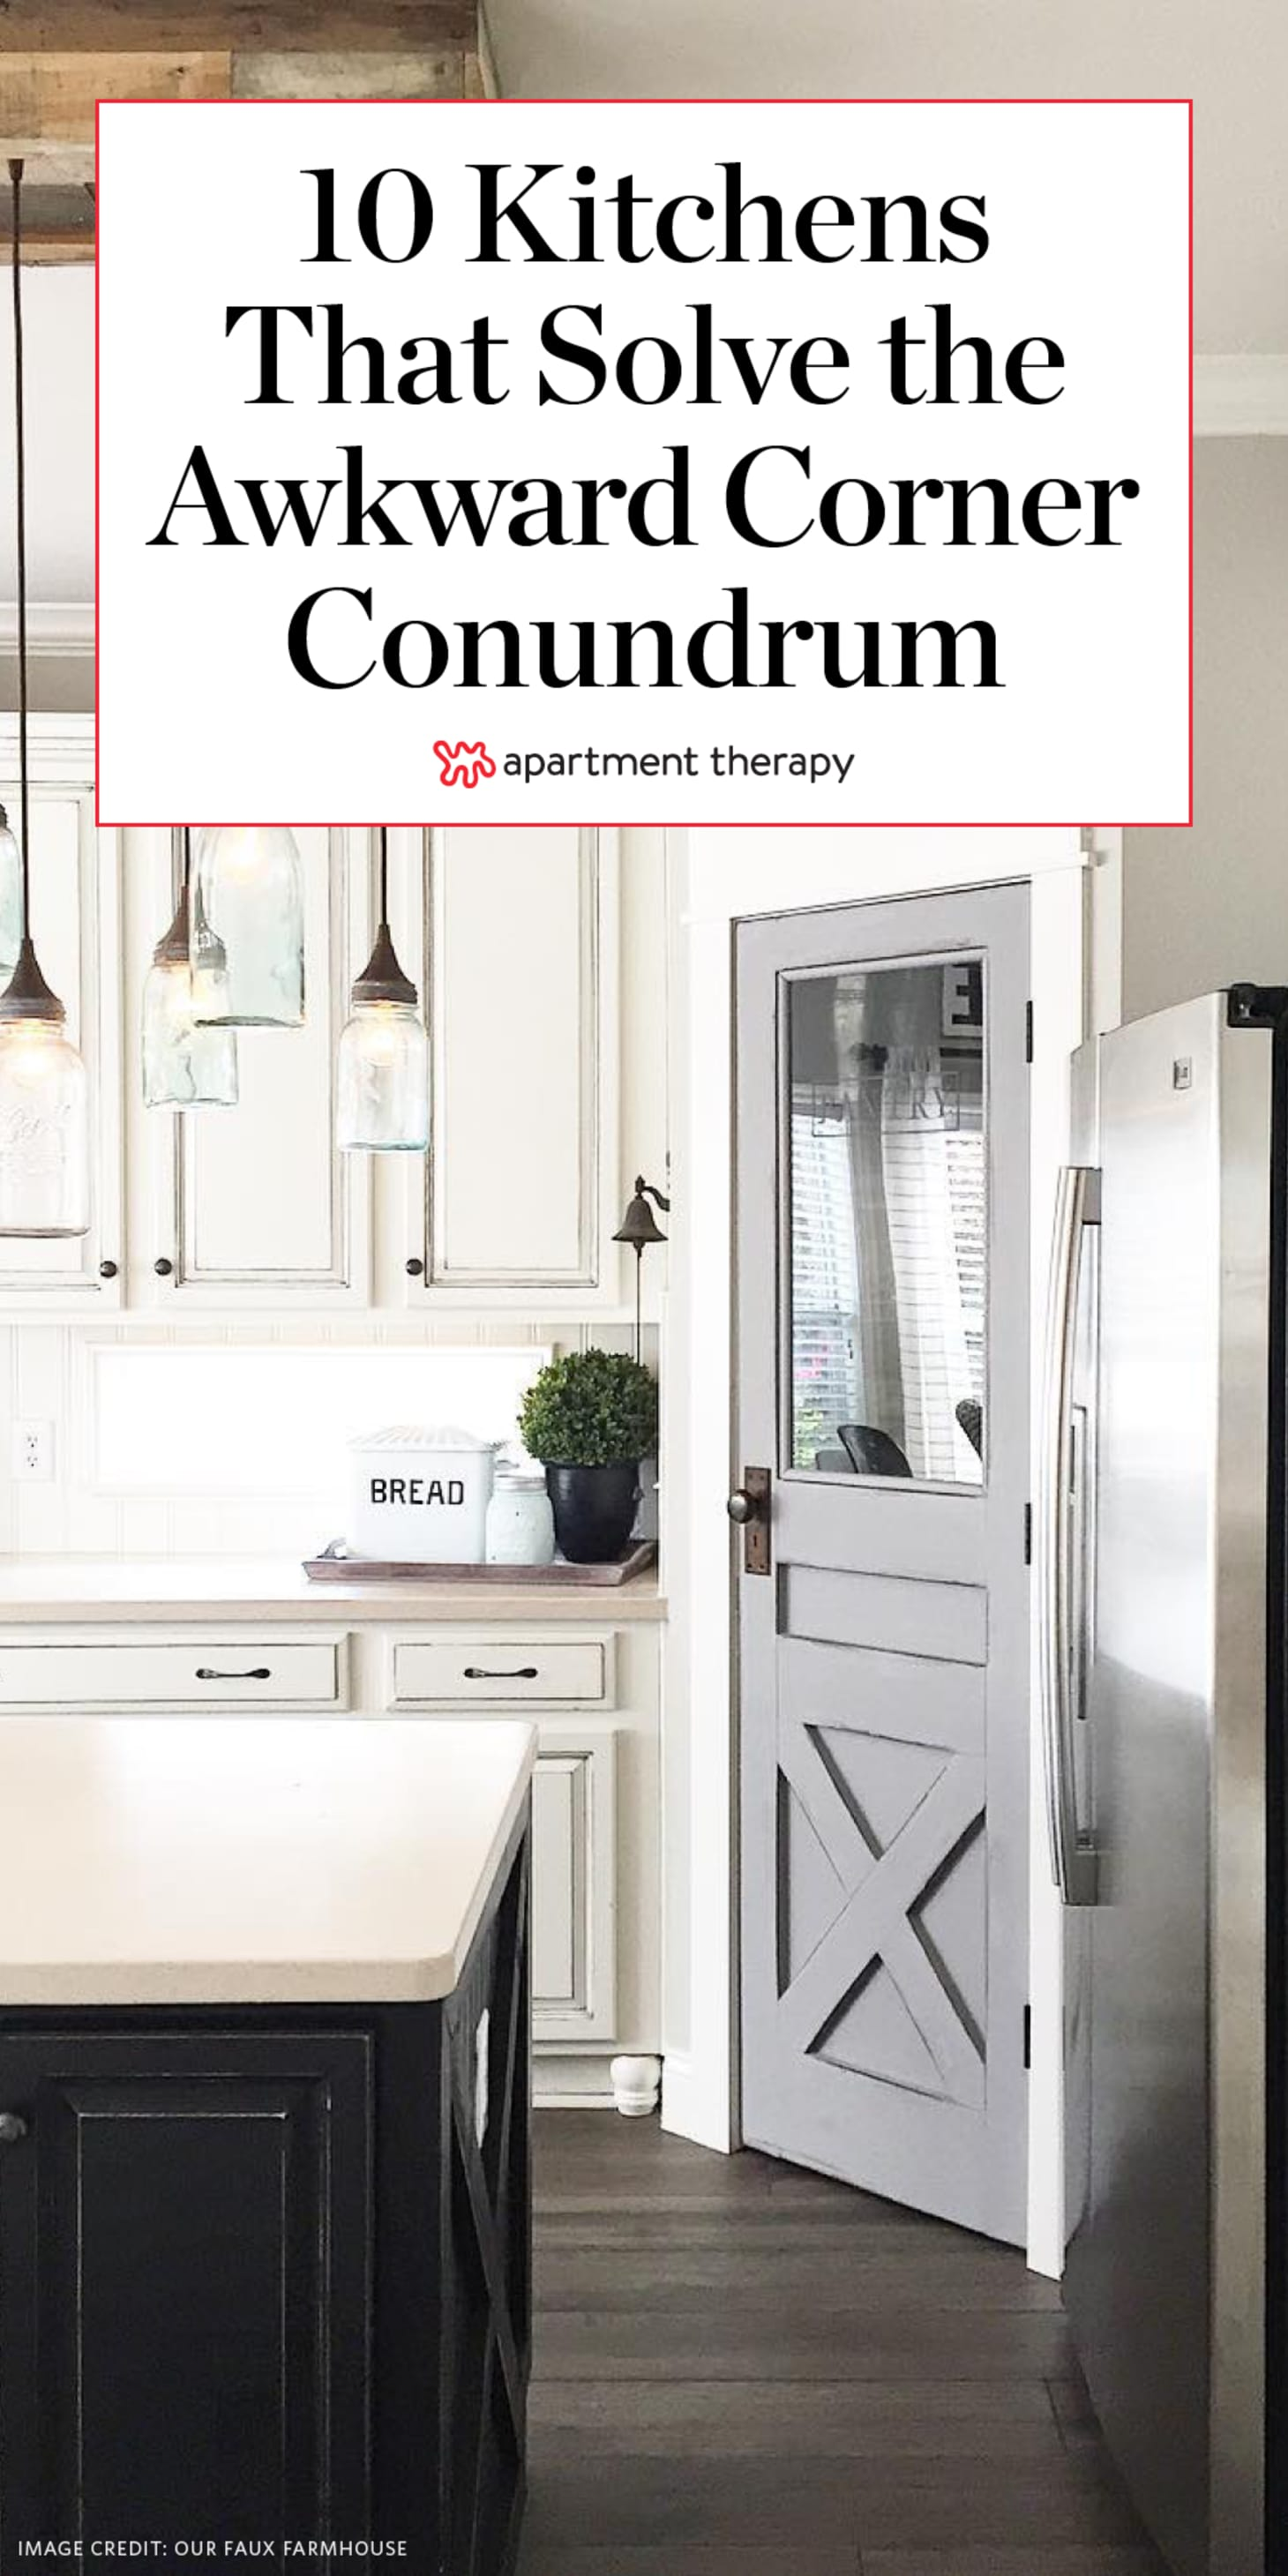 Corner Kitchen Cabinet - Kitchen Design Ideas | Apartment ... on fireplaces for corners, interior decorating for corners, art for corners, kitchen sinks for corners, cabinets for corners, furniture for corners, accessories for corners, vanities for corners, tiles for corners, decor for corners, kitchen cupboards for corners,